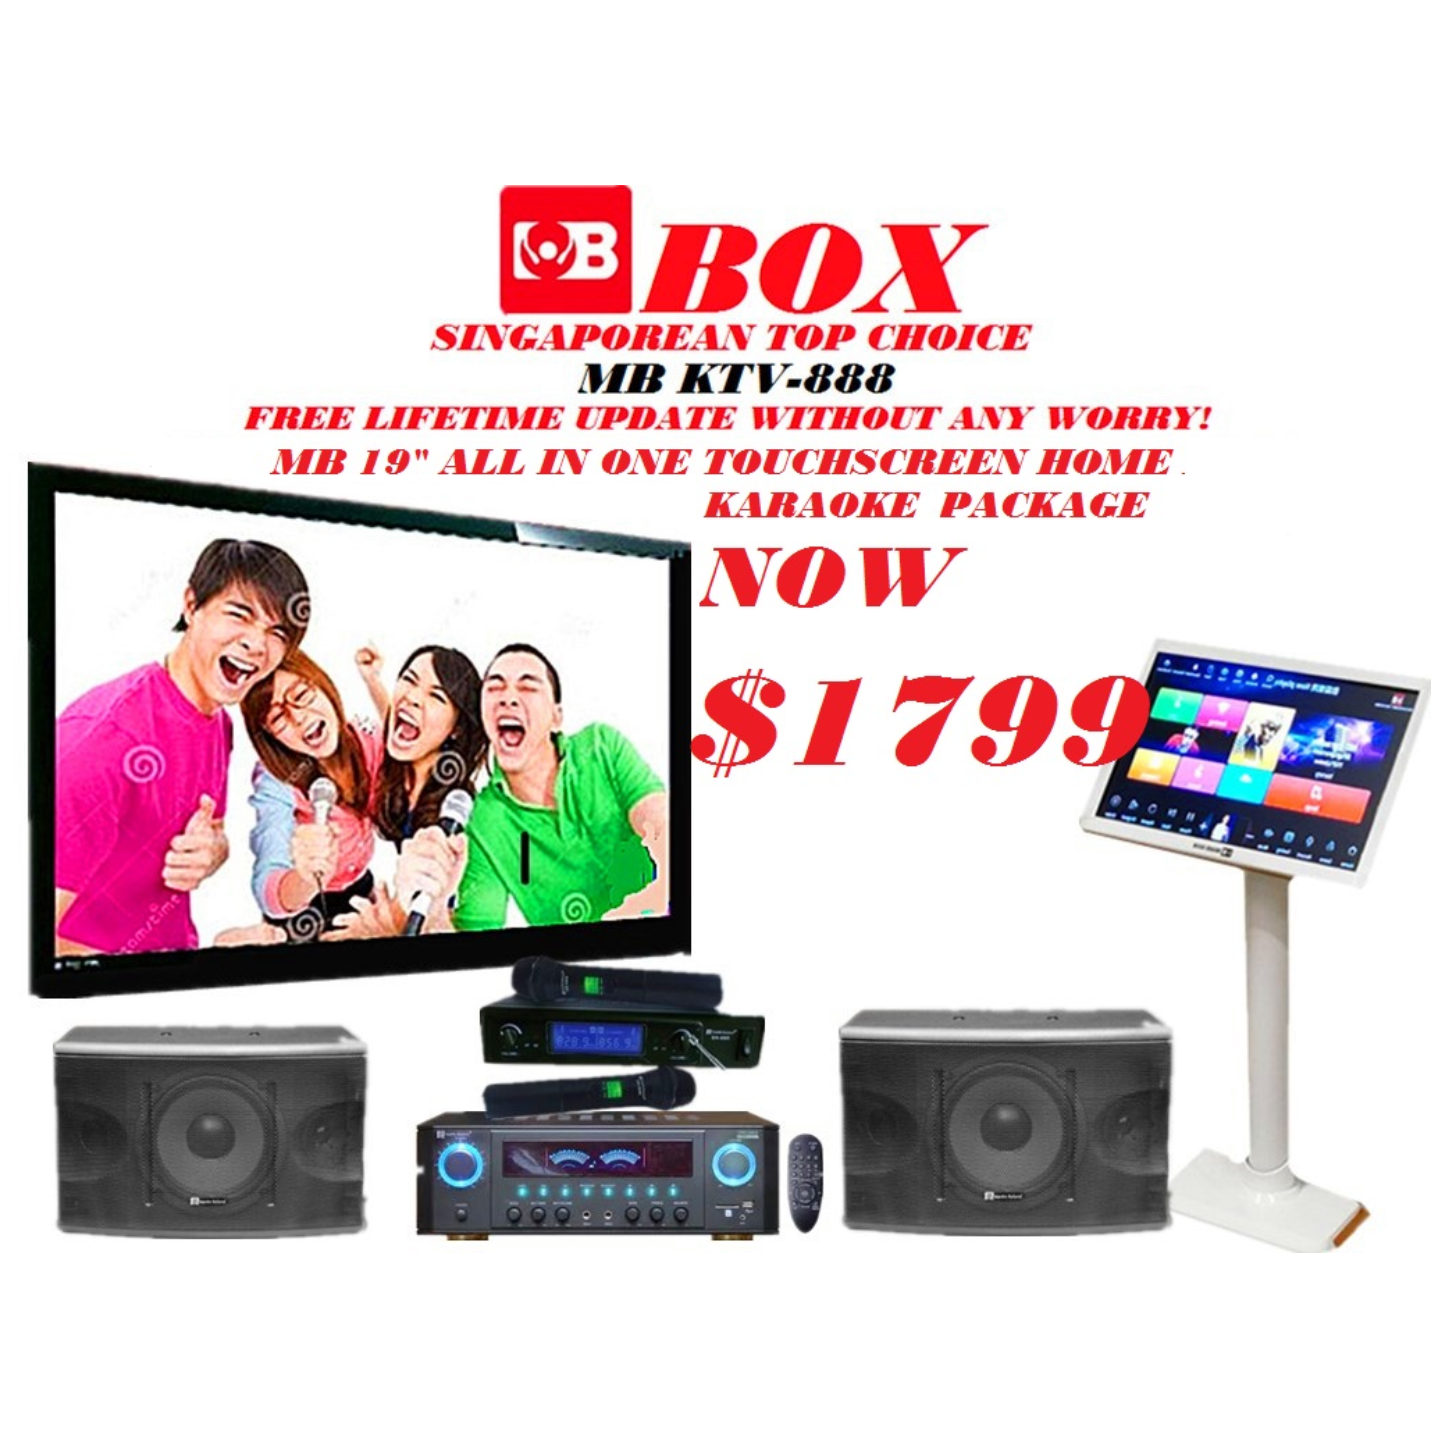 Full karaoke system Now offer at 1799